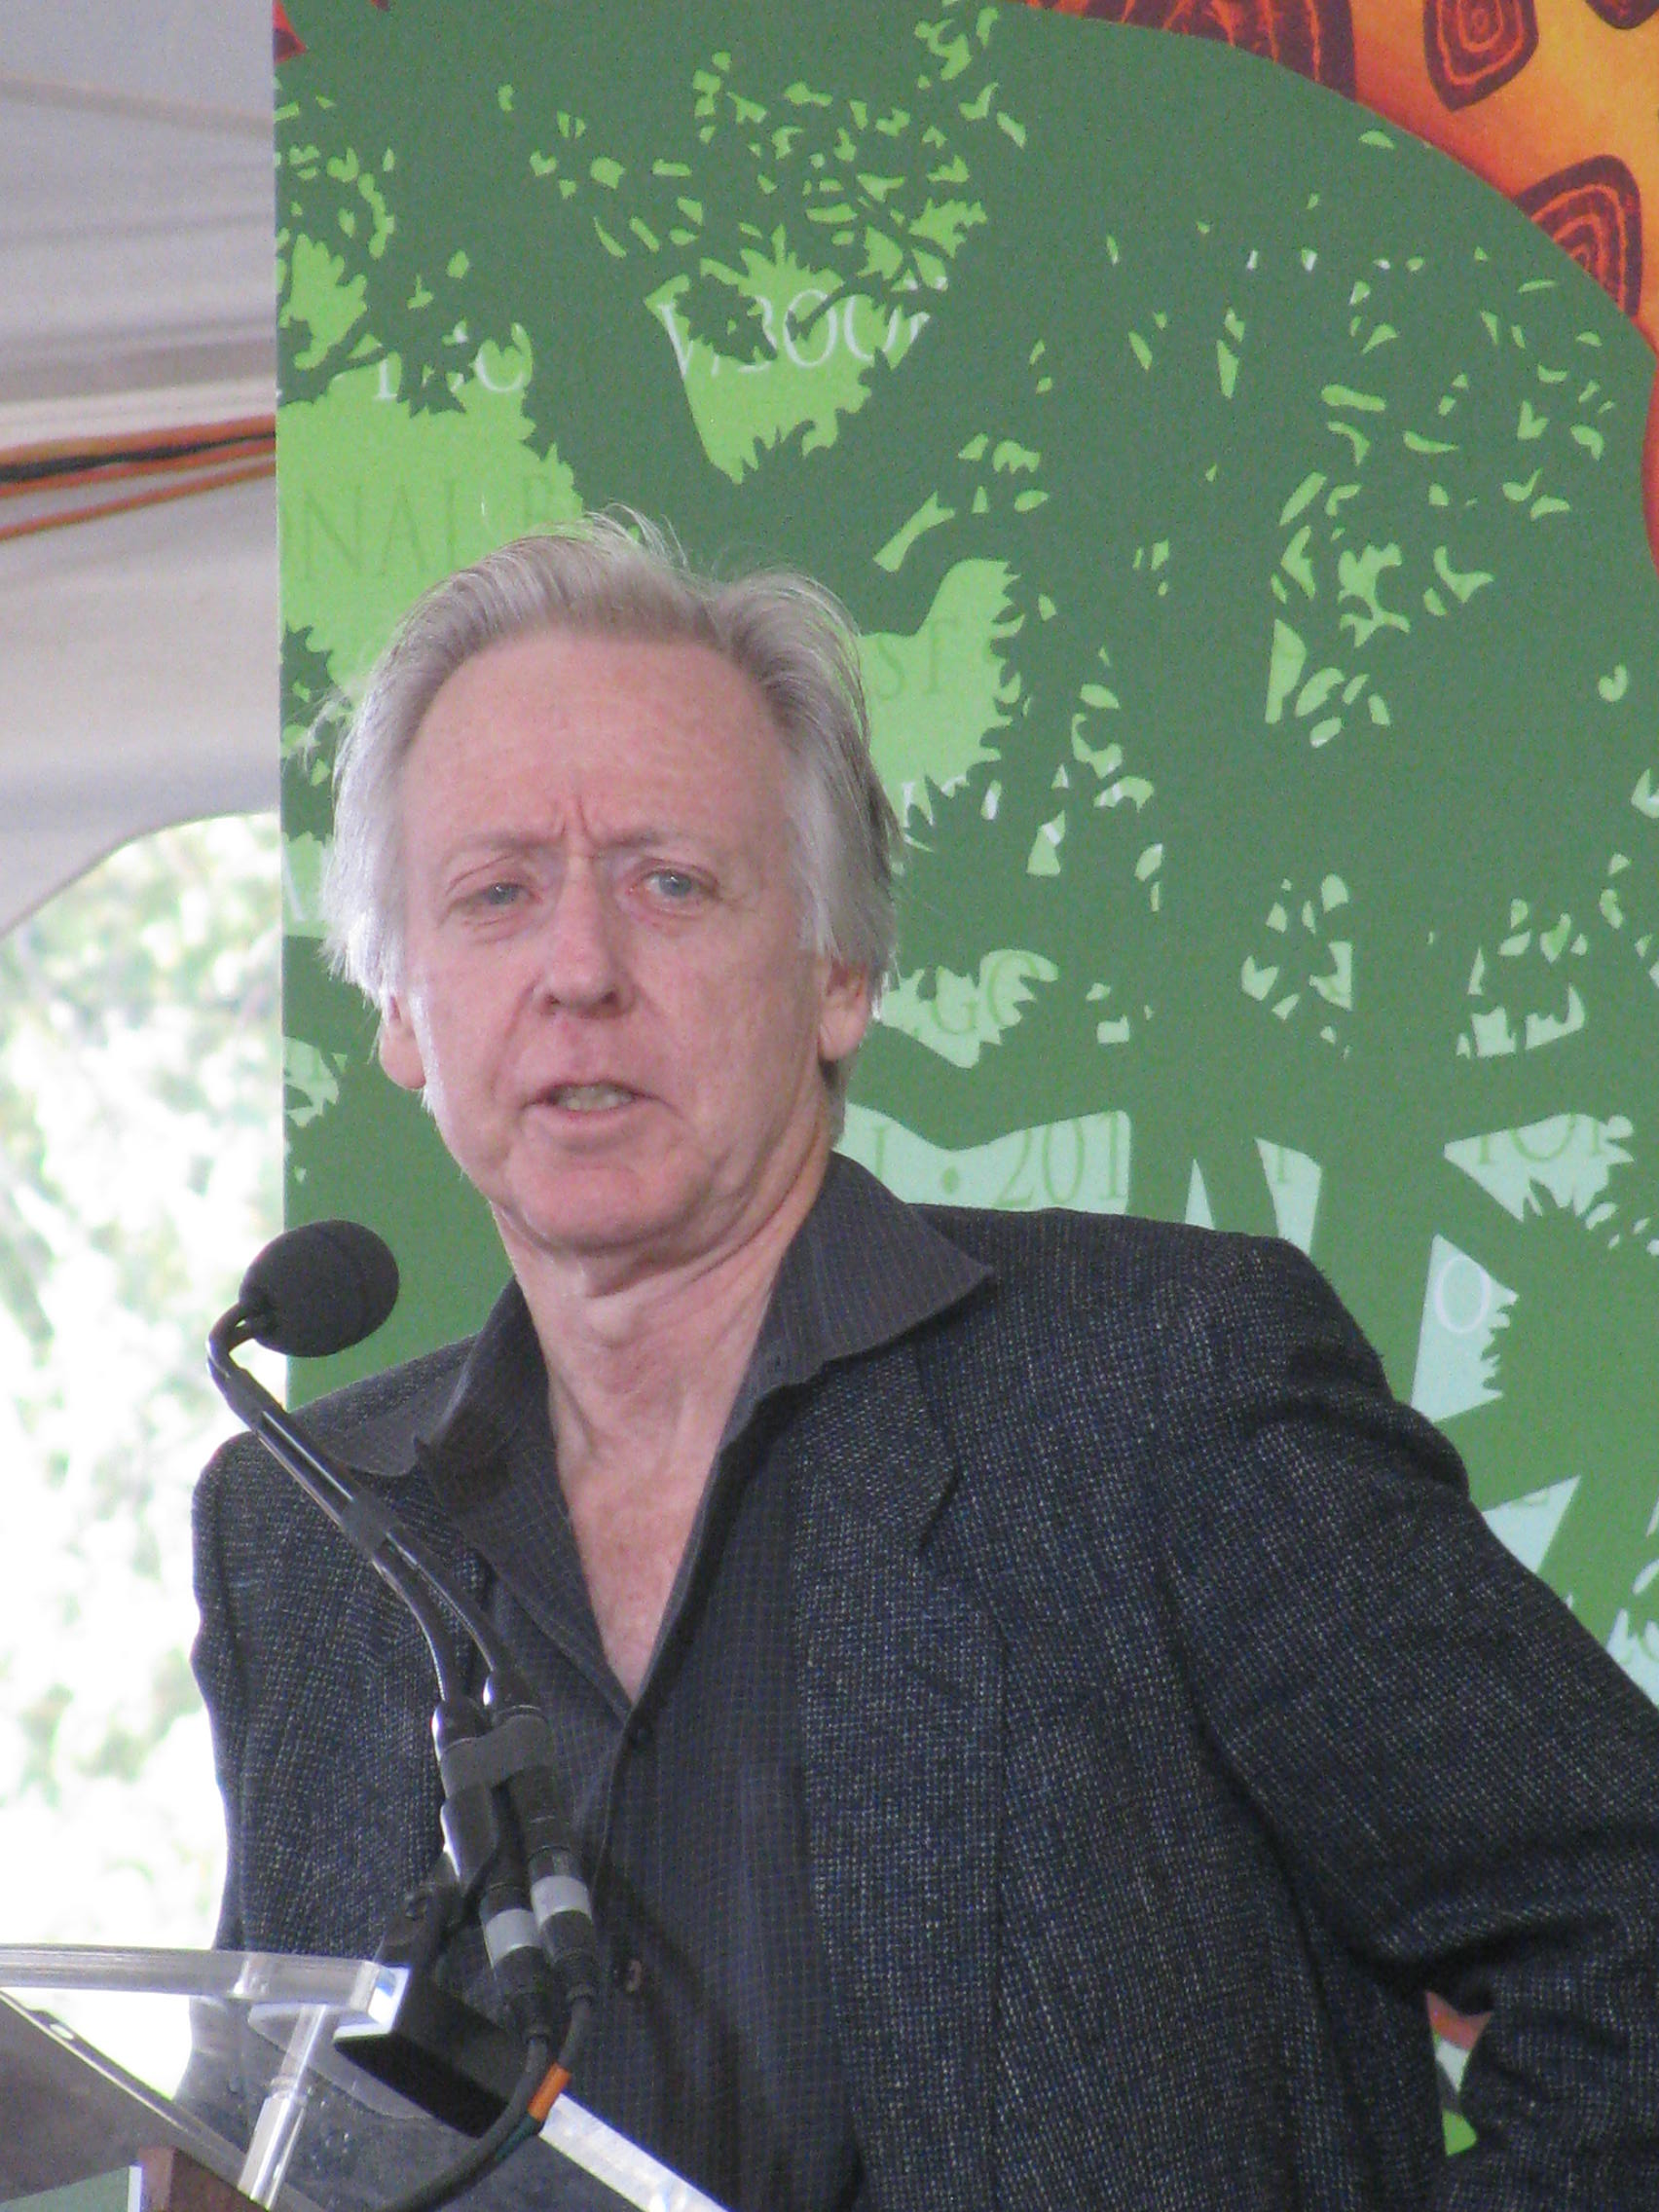 Stewart at the 2012 [[National Book Festival]]